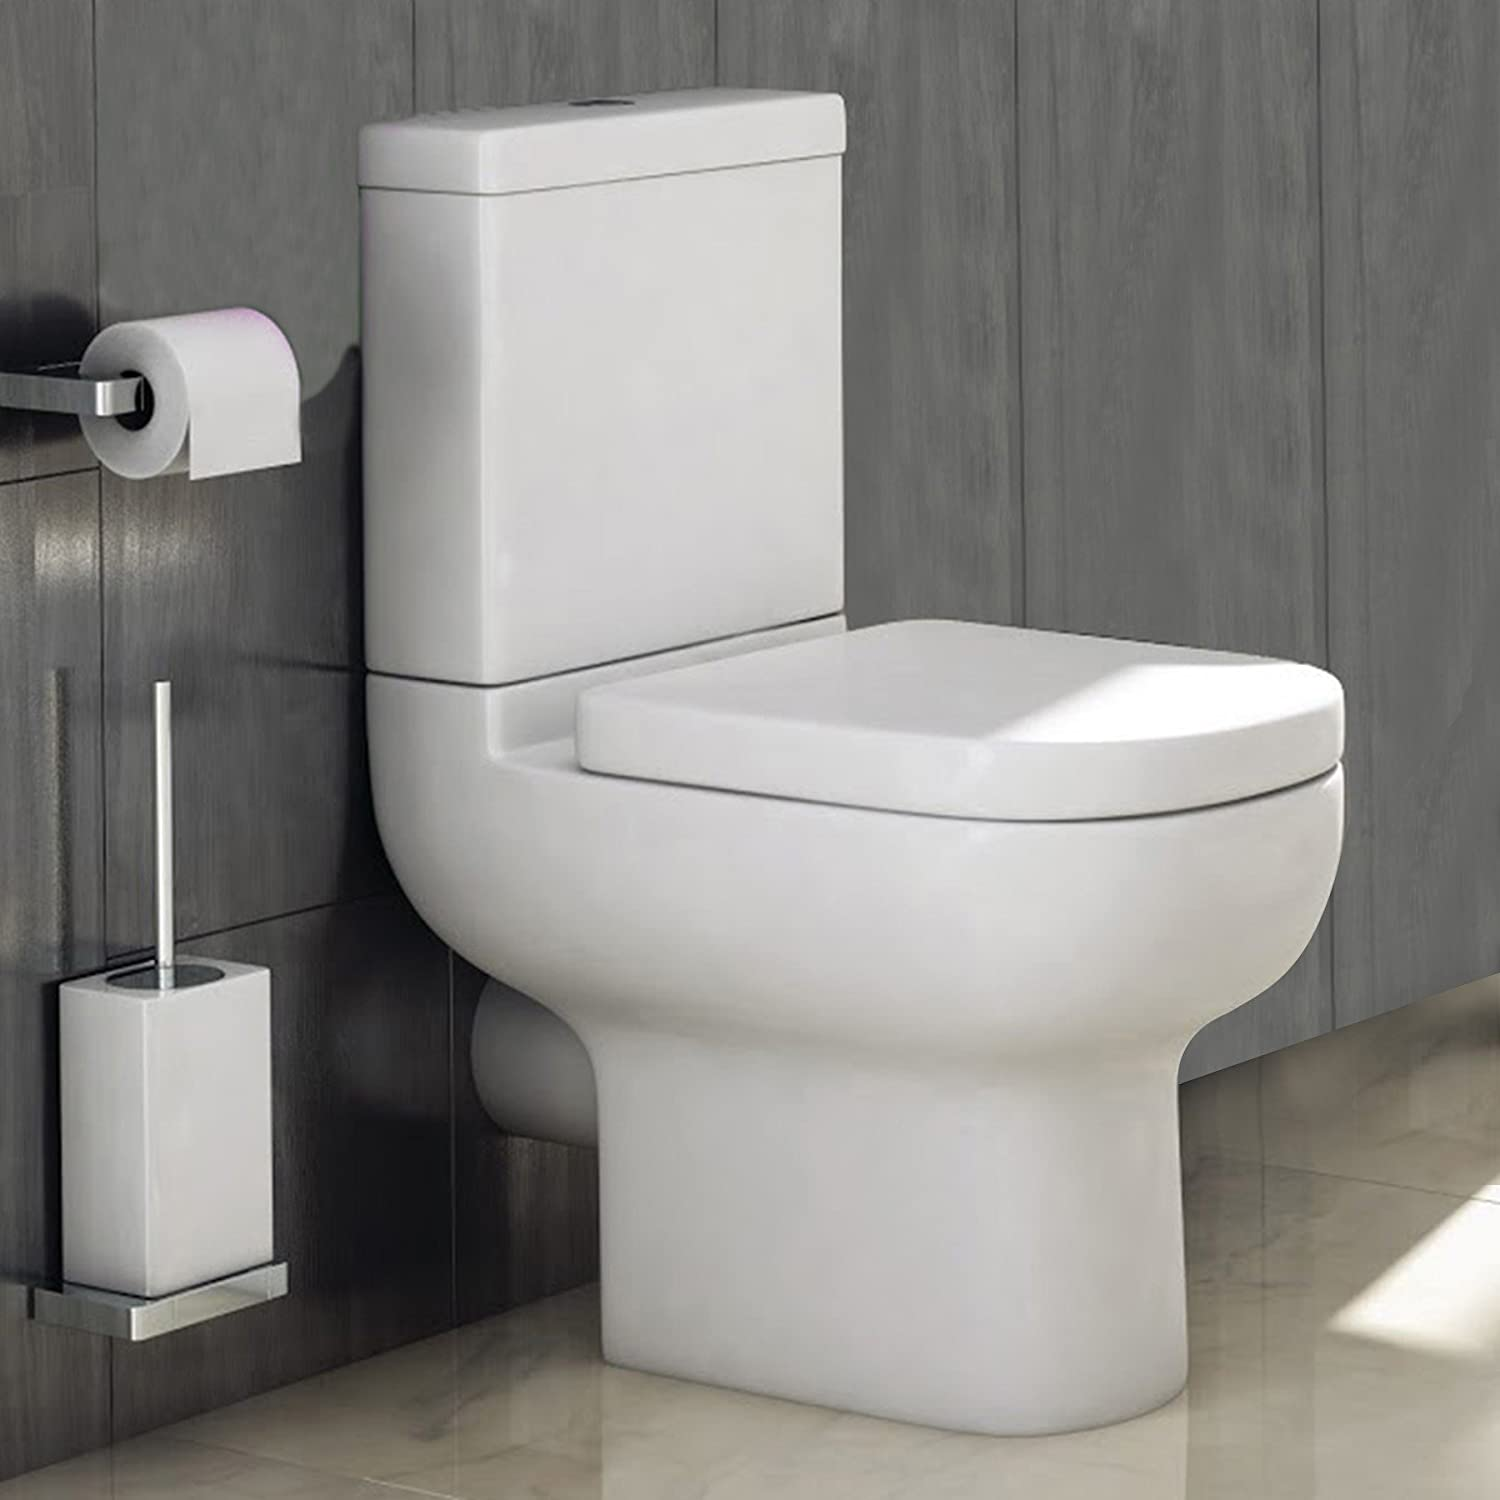 Modern Studio Close Coupled Toilet with White Pan & Cistern Soft Close Seat Bathroom WC